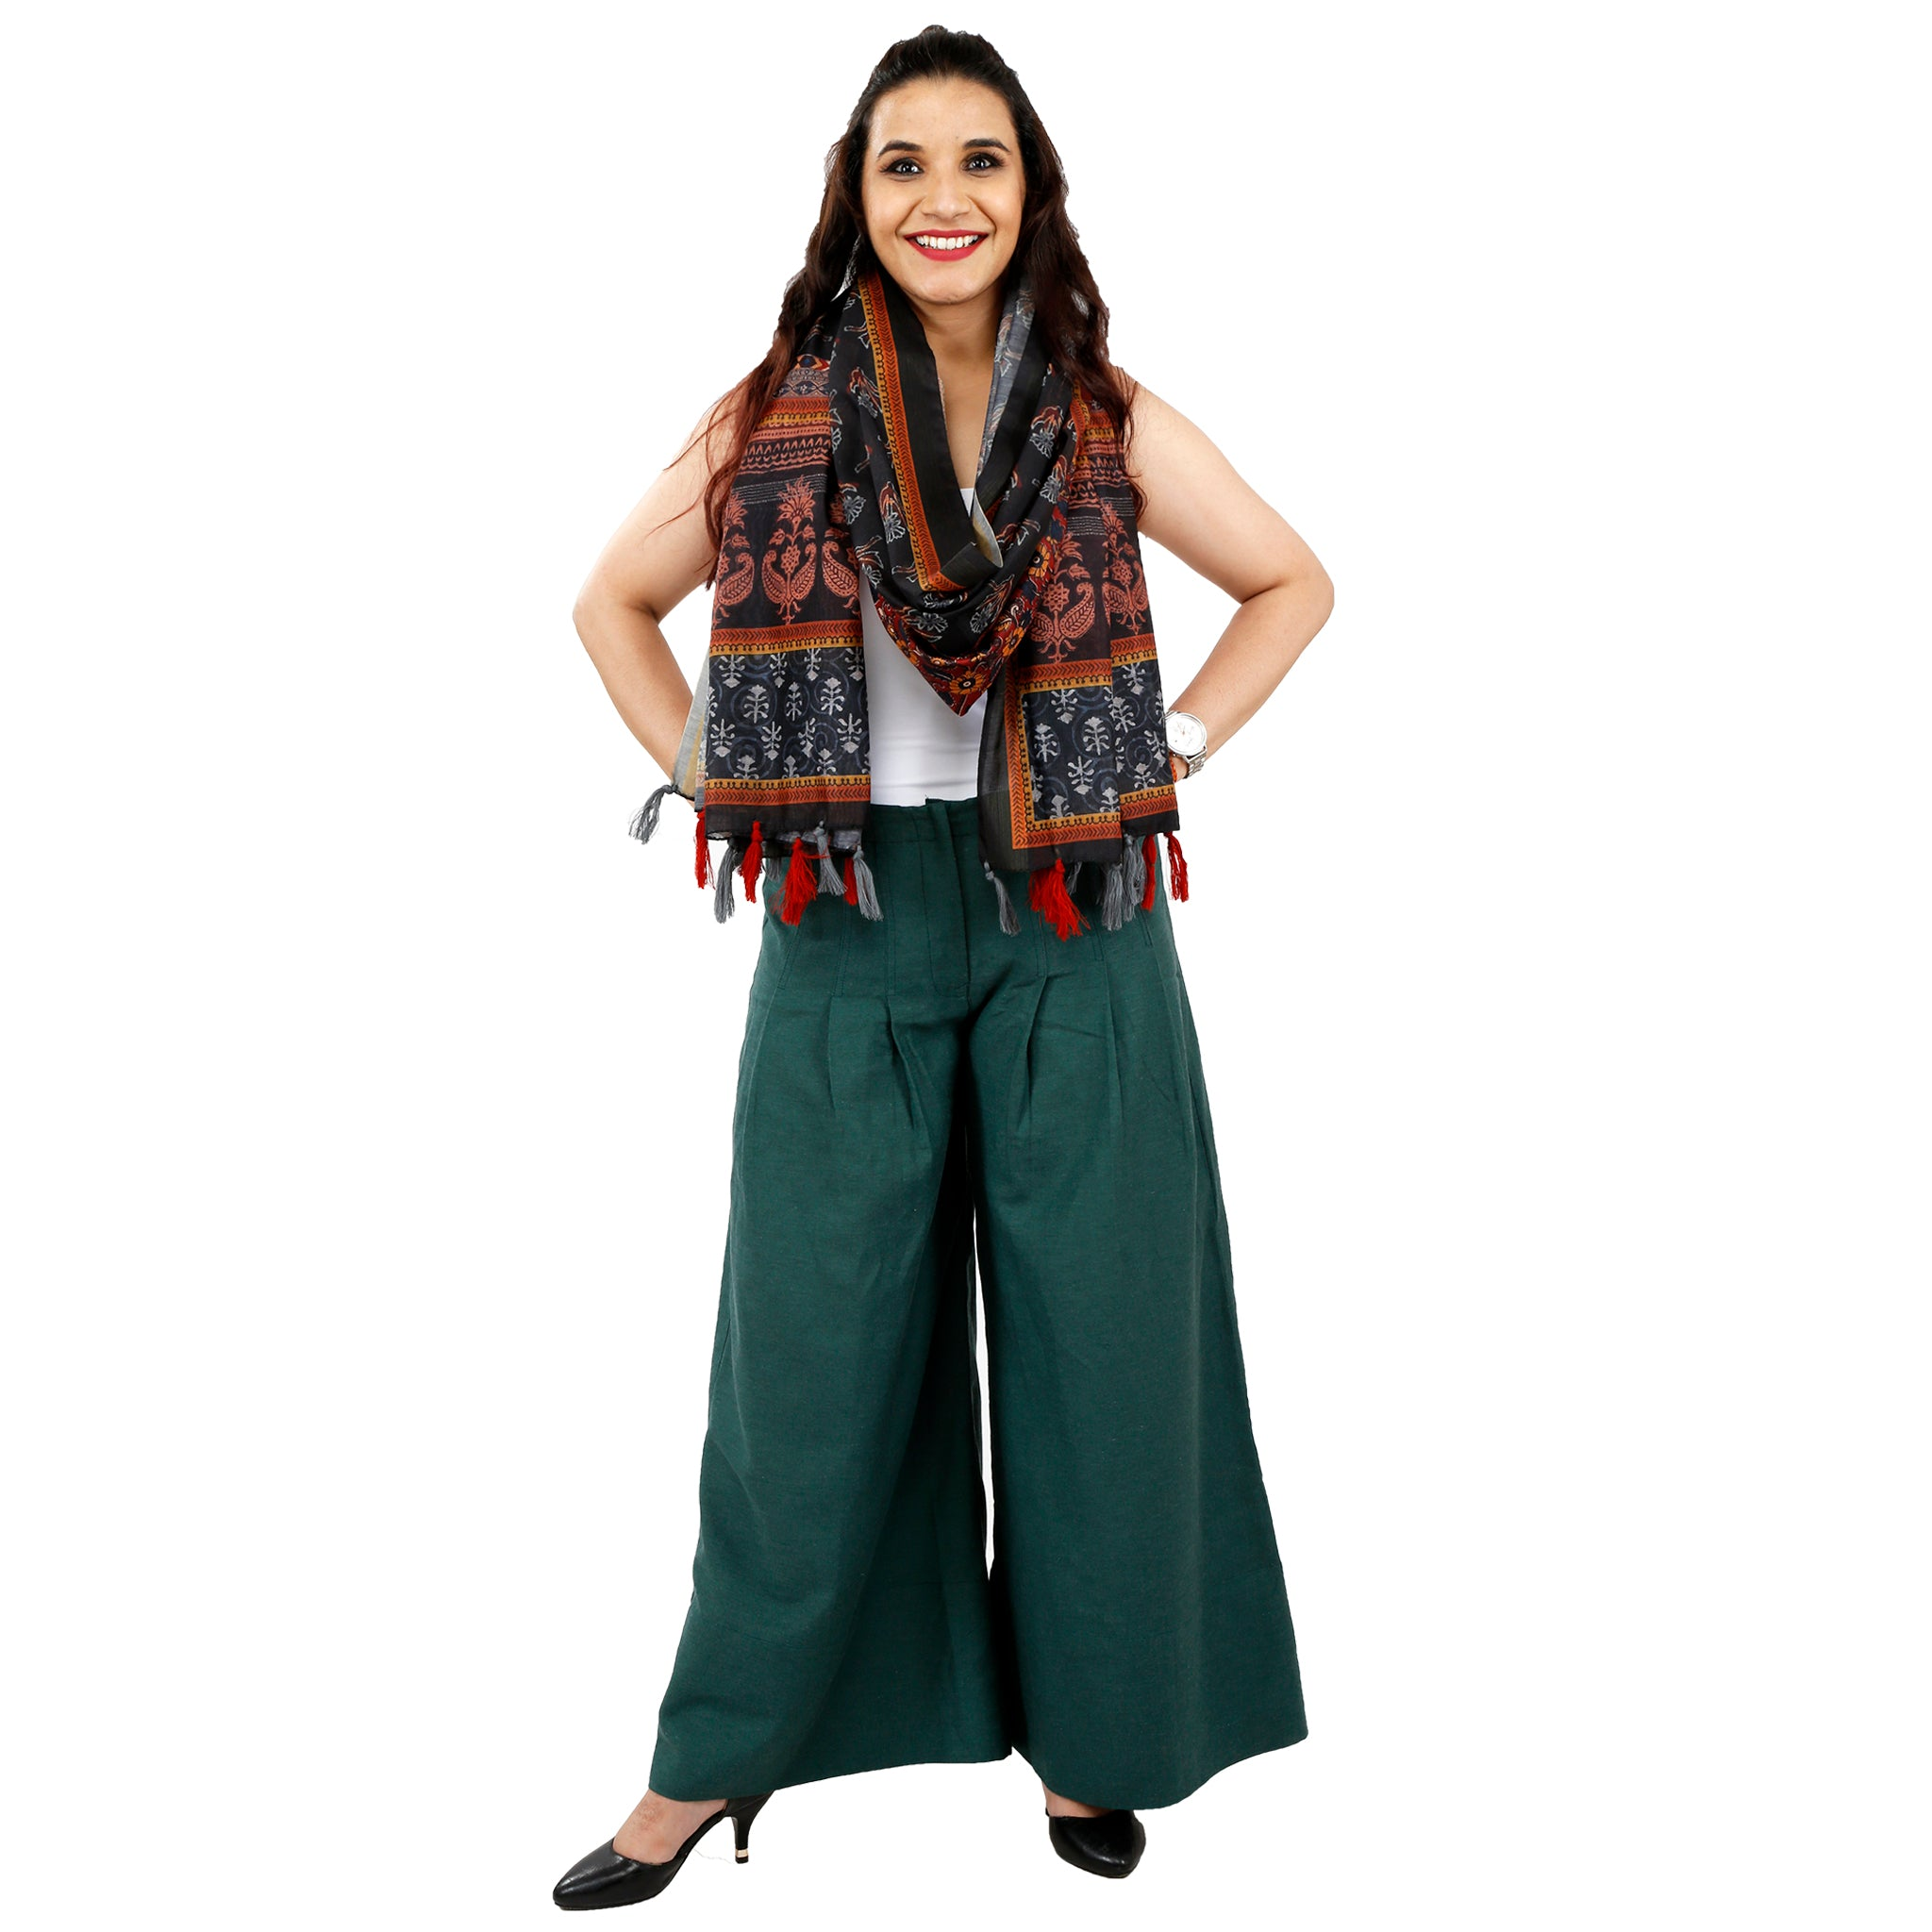 shubhangi litoria-SIT-maid-wearing-green-palazzo-pants